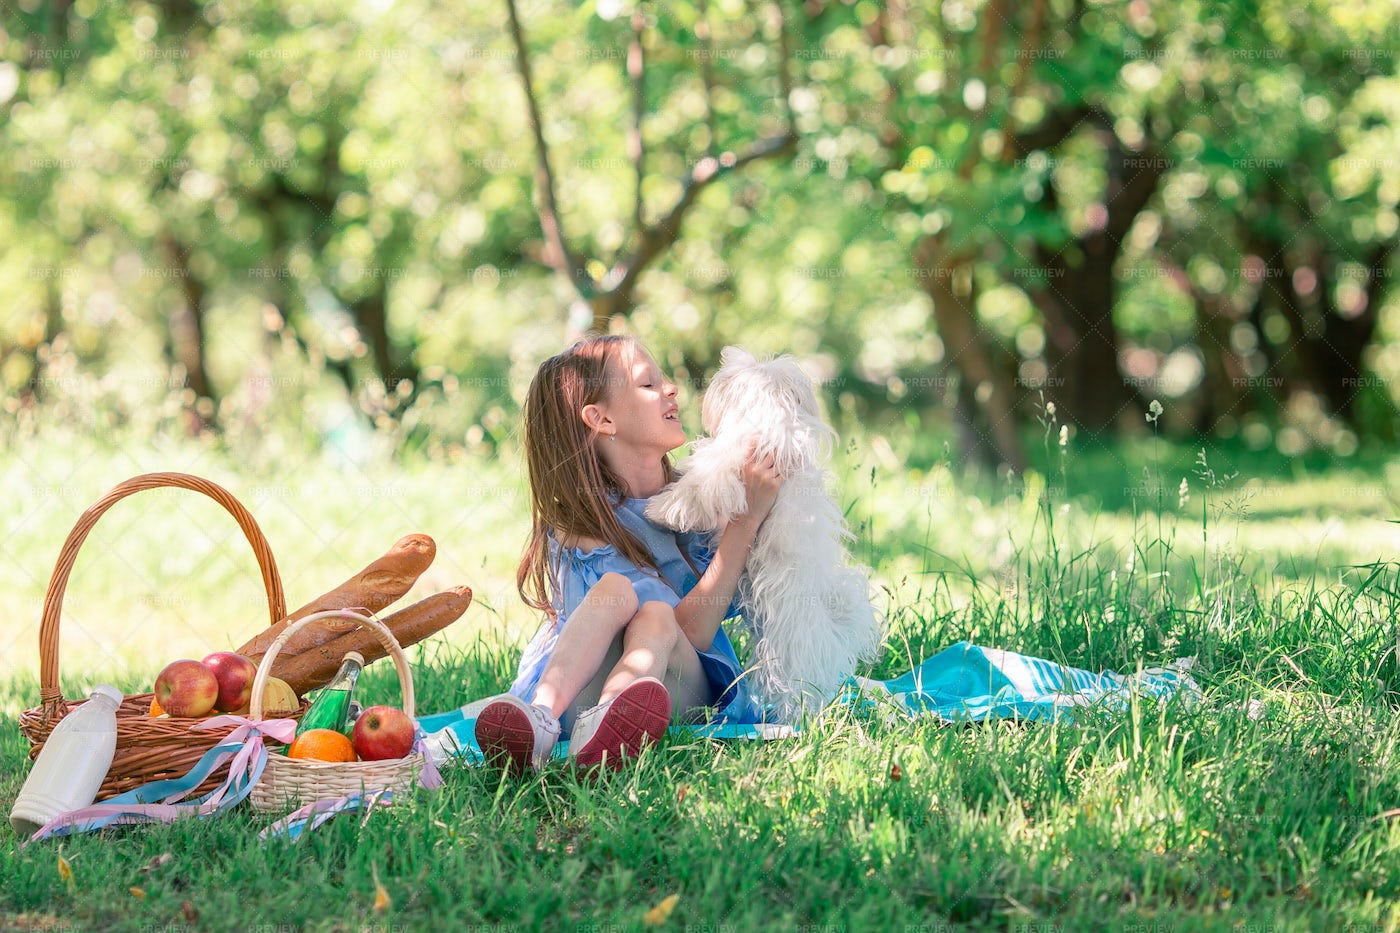 Child Playing With Puppy In Park: Stock Photos